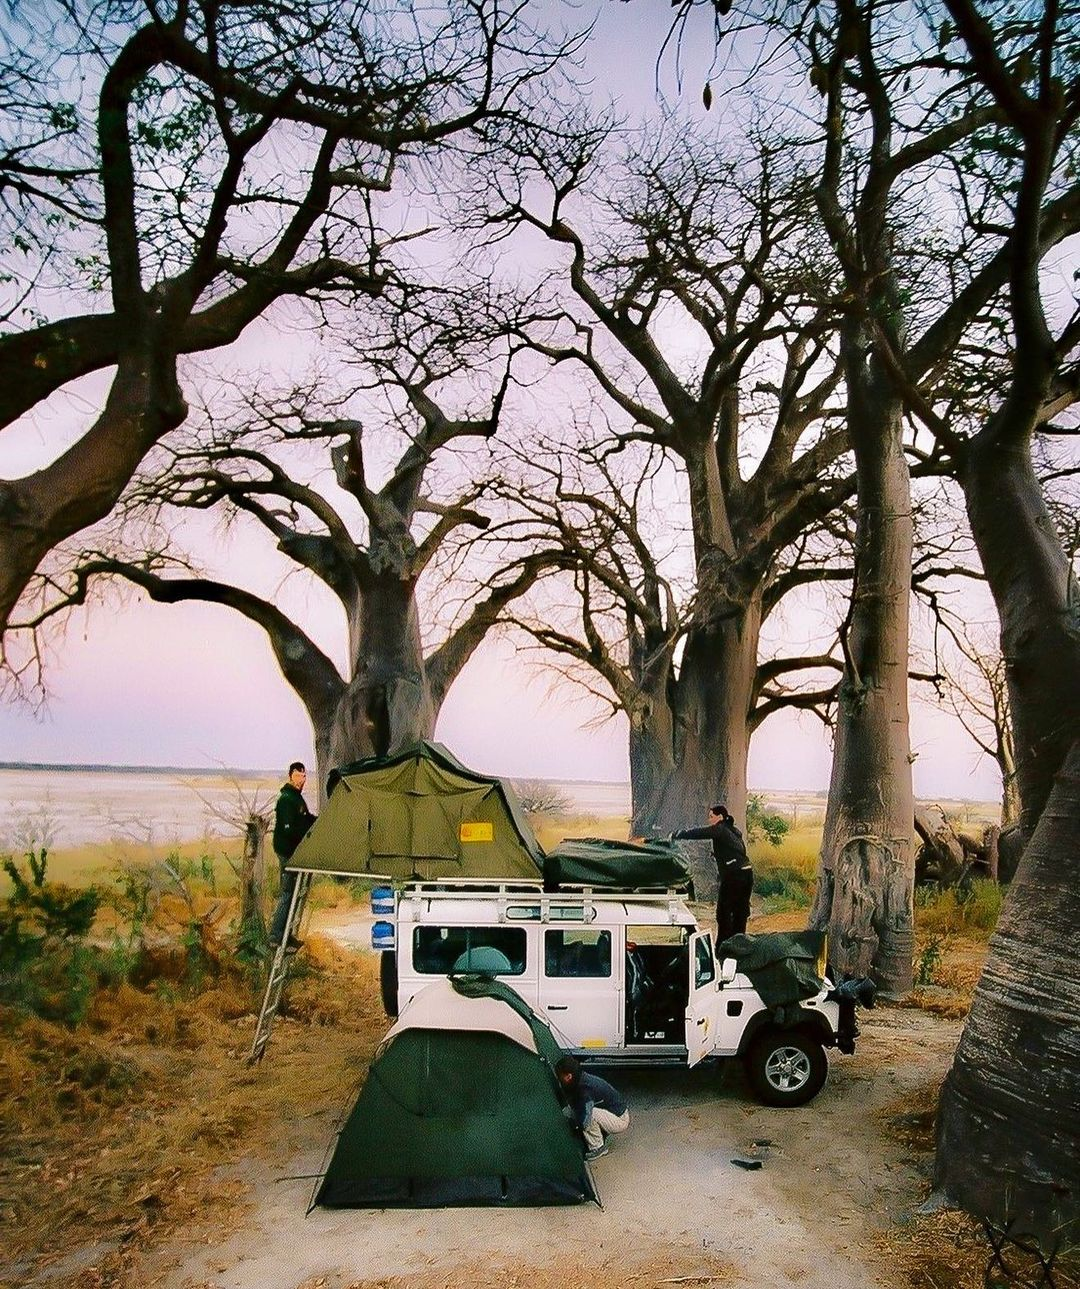 Botswana top attractions and places to visit